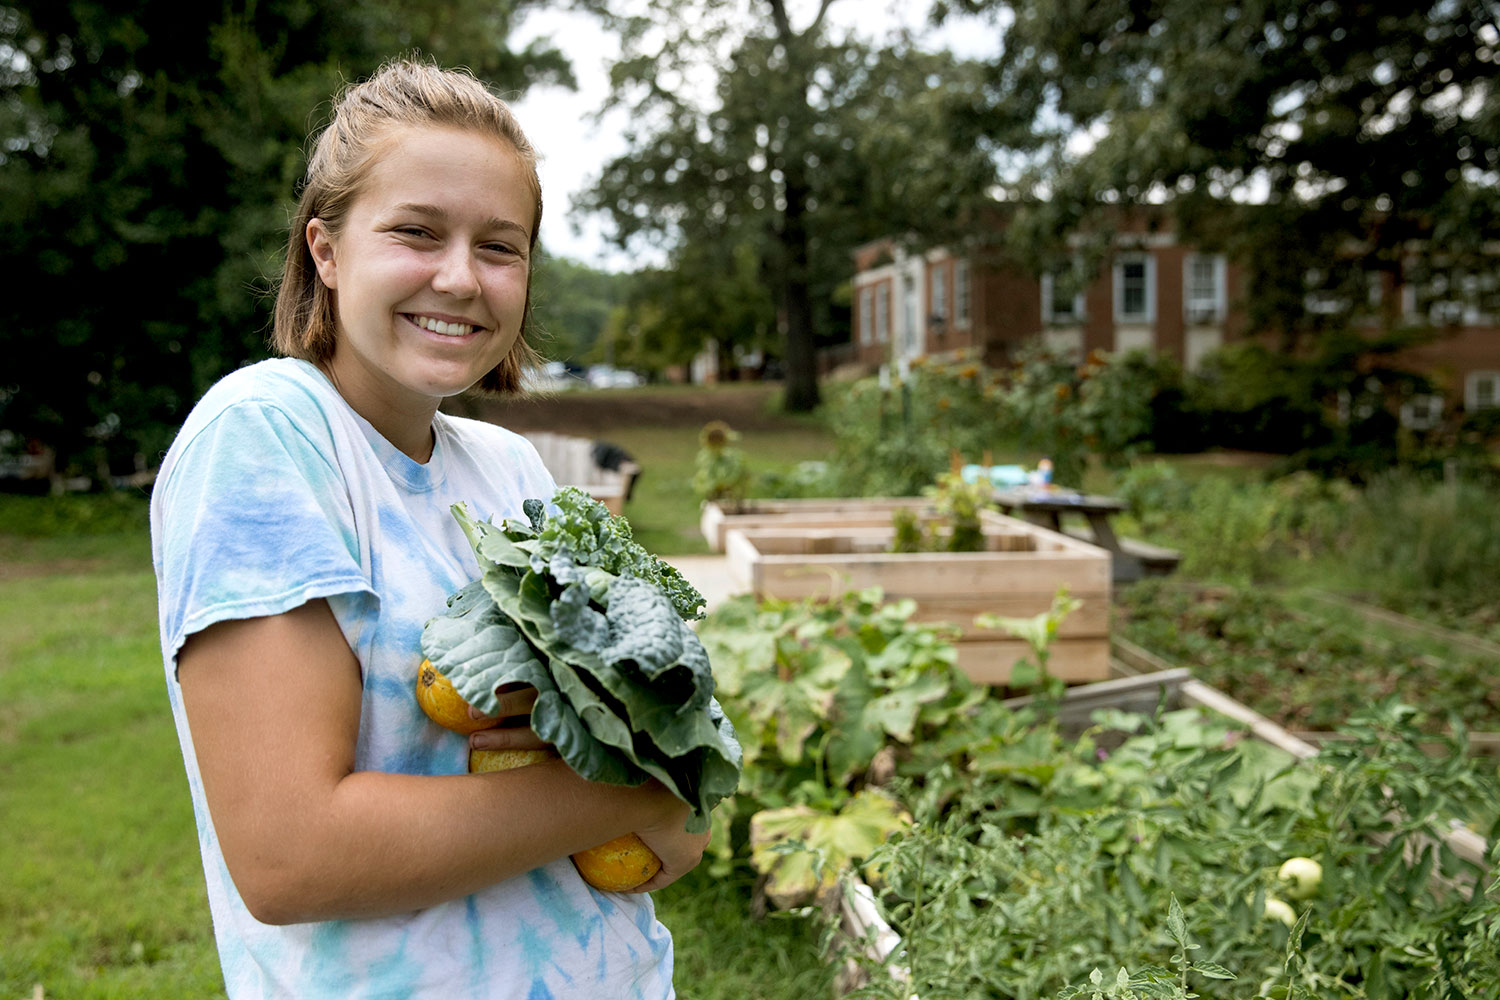 Watt says that once she discovered the community garden, it quickly became one of her favorite spots on Grounds.